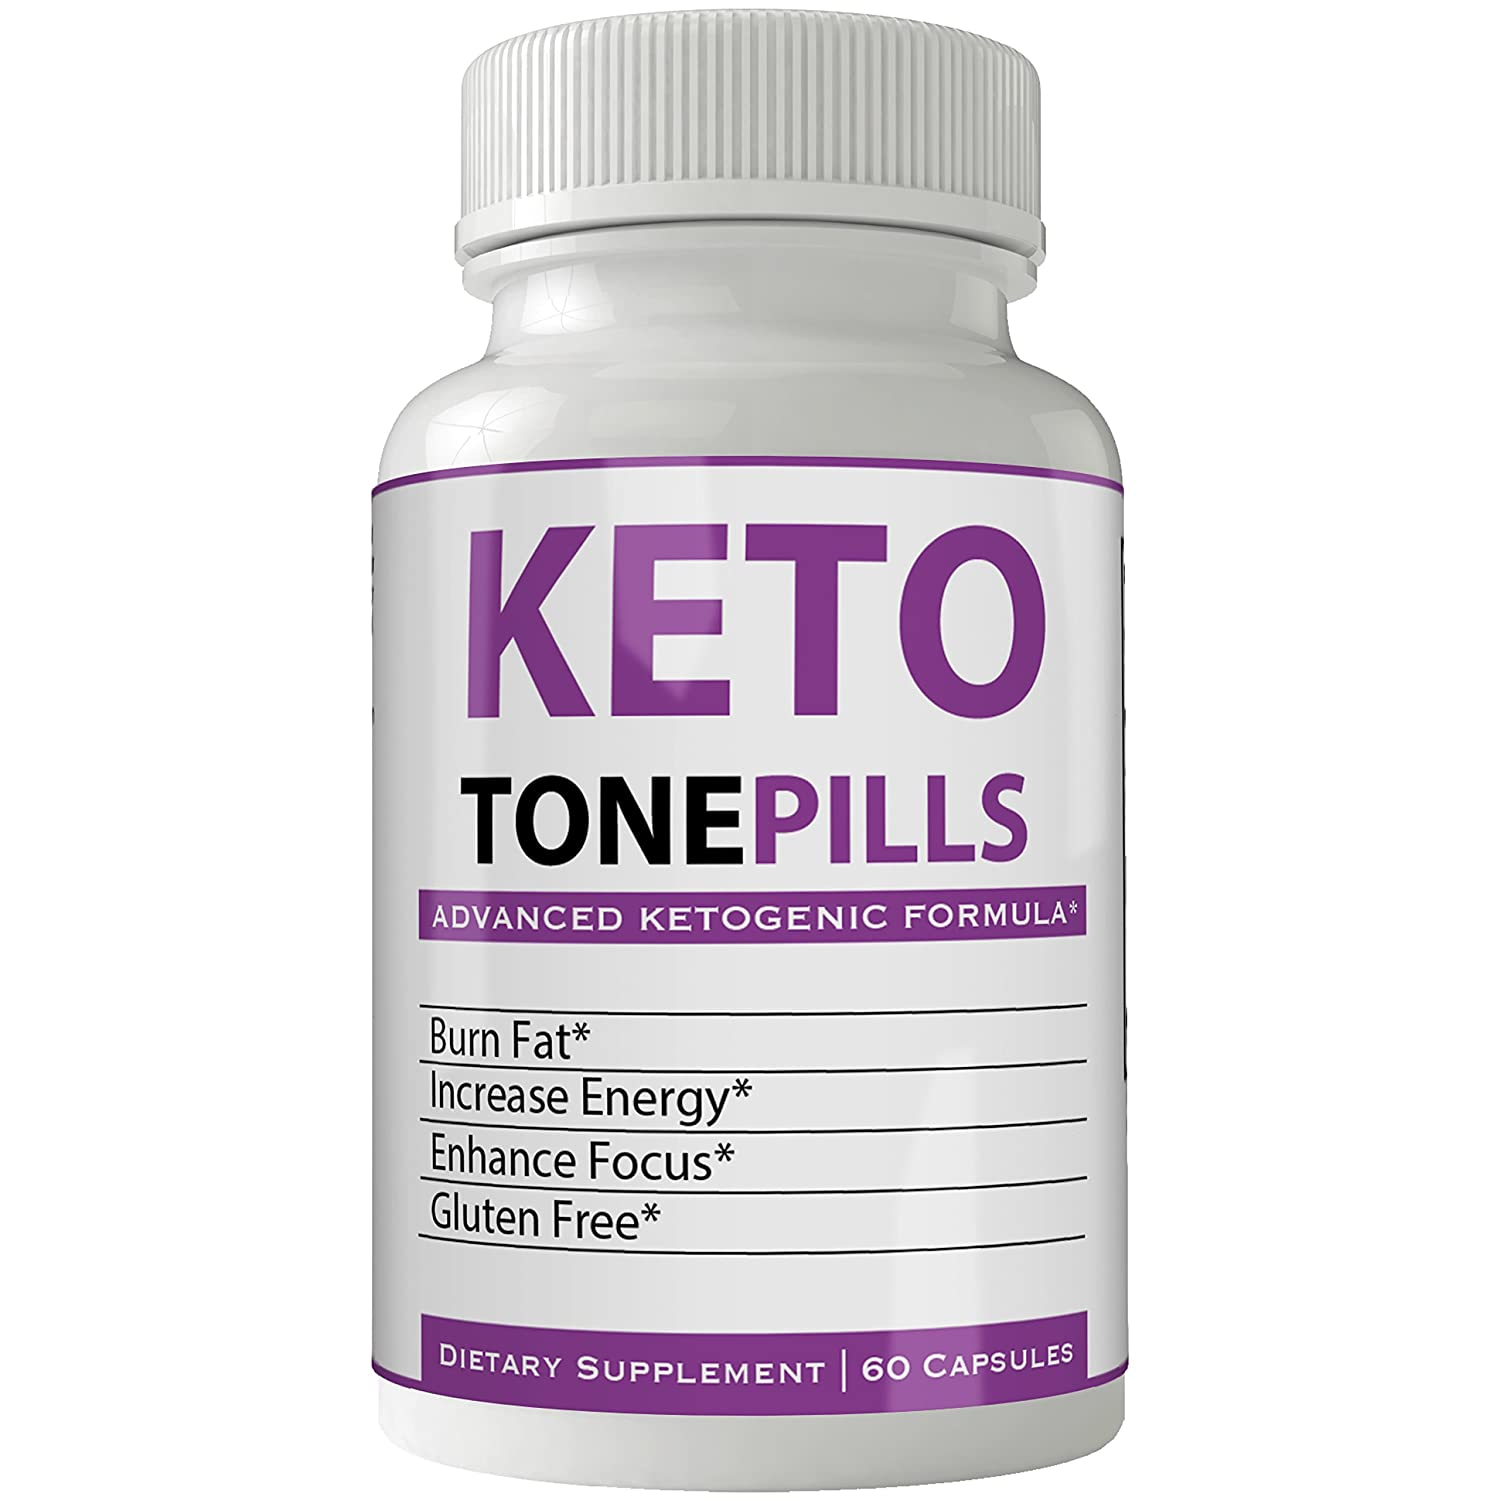 Details About Keto Tone Pills Weight Loss Supplement Keto Diet Tablets Best Fire Up Your Fat